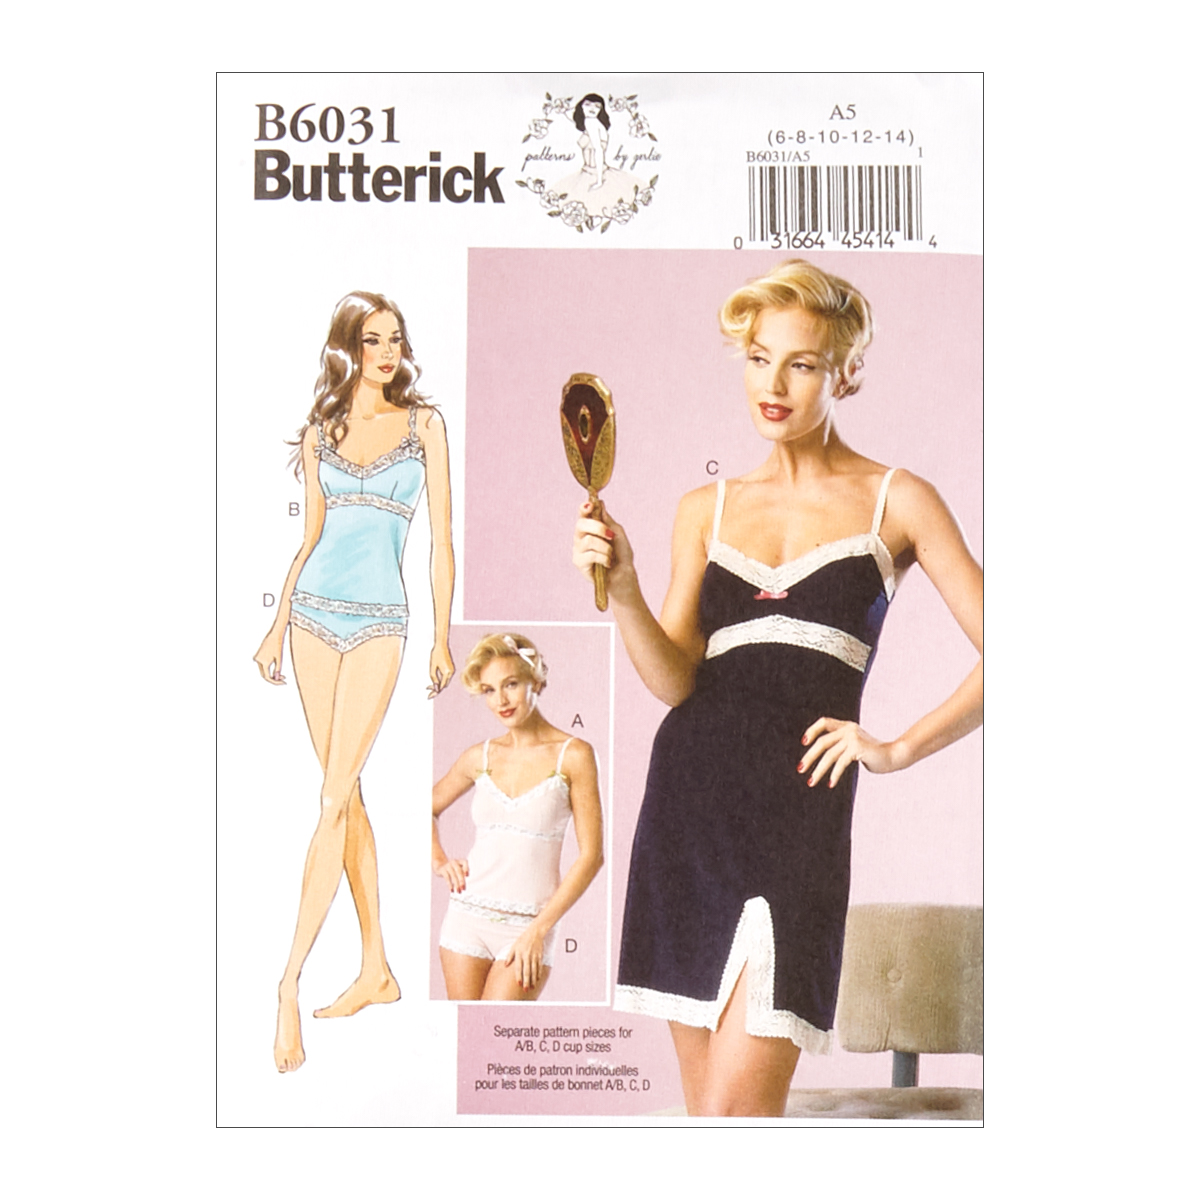 1960s – 70s Sewing Patterns- Dresses, Tops, Pants, Mens Butterick B6031 Patterns by Gertie Camisole Slip and Panties A5 Sizes 6-14 $11.97 AT vintagedancer.com